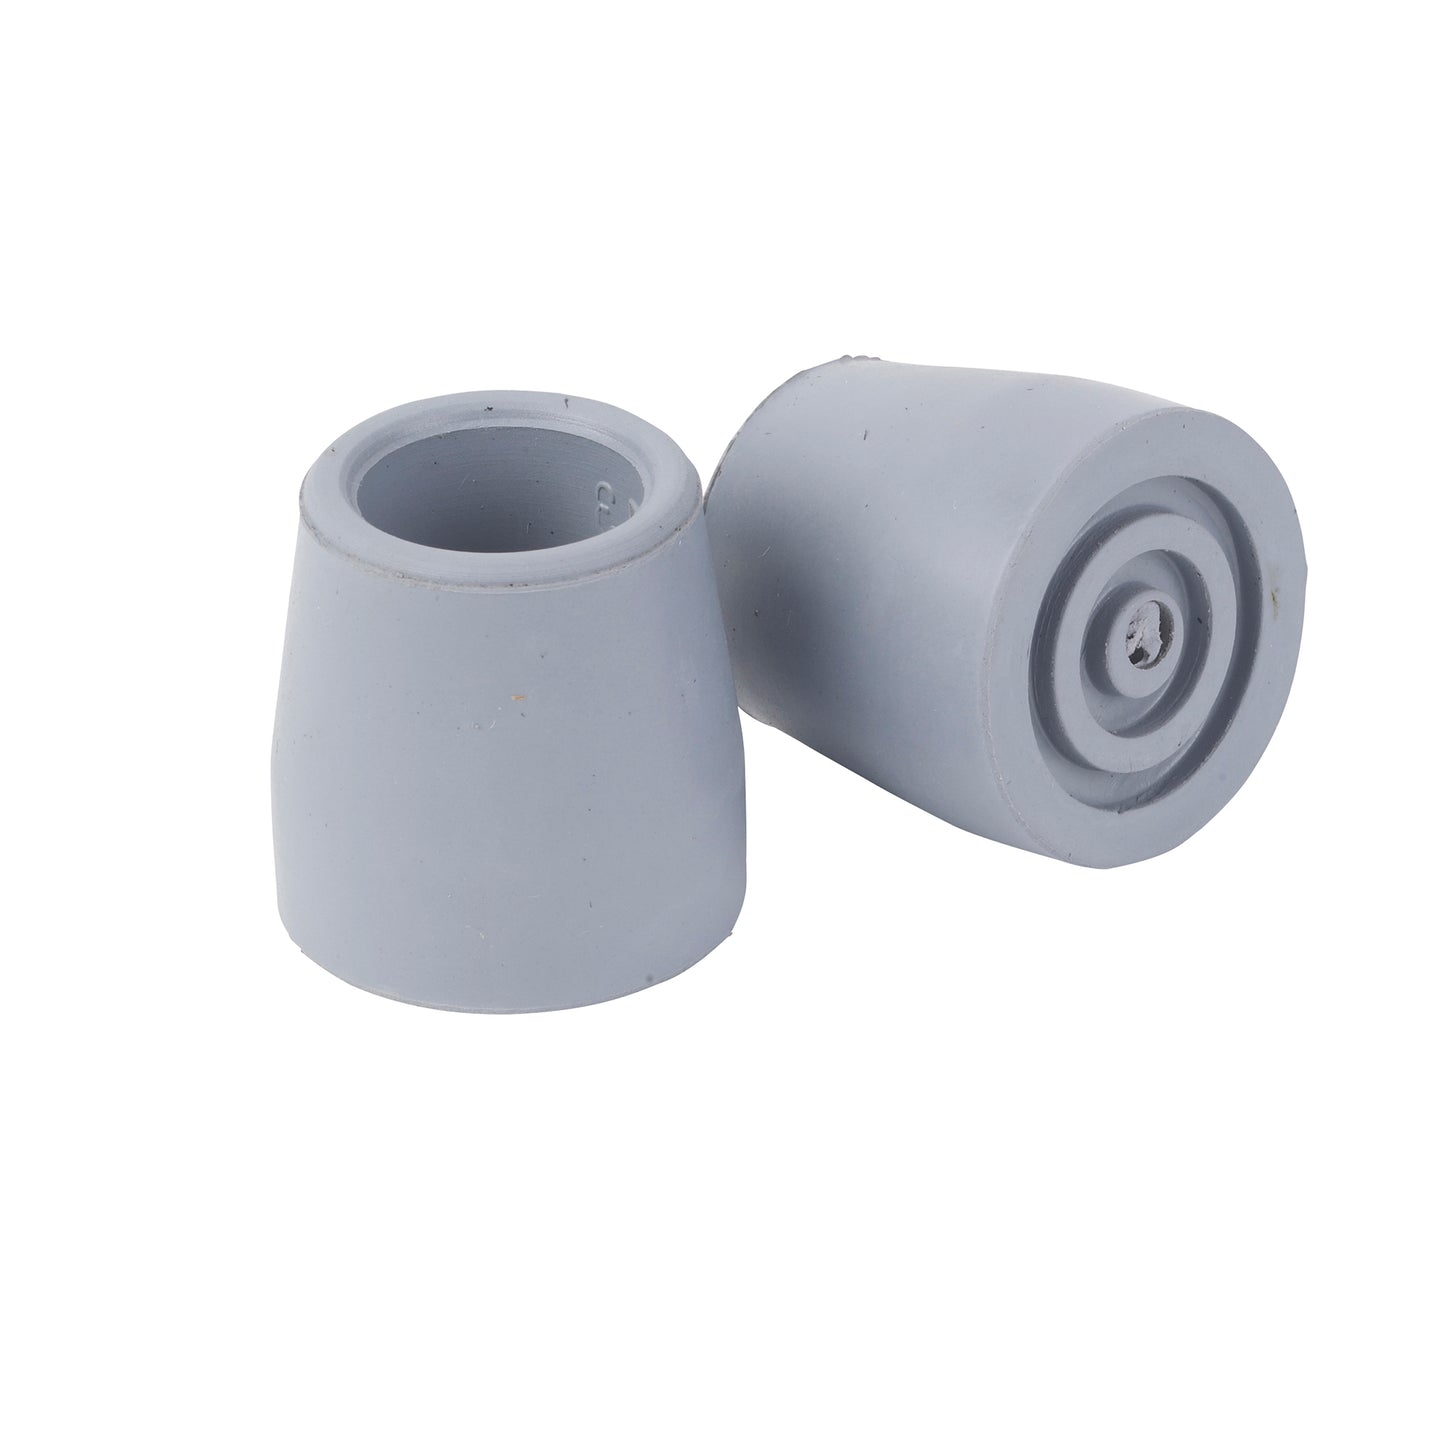 Drive Utility Walker Replacement Tips- 1 Pair